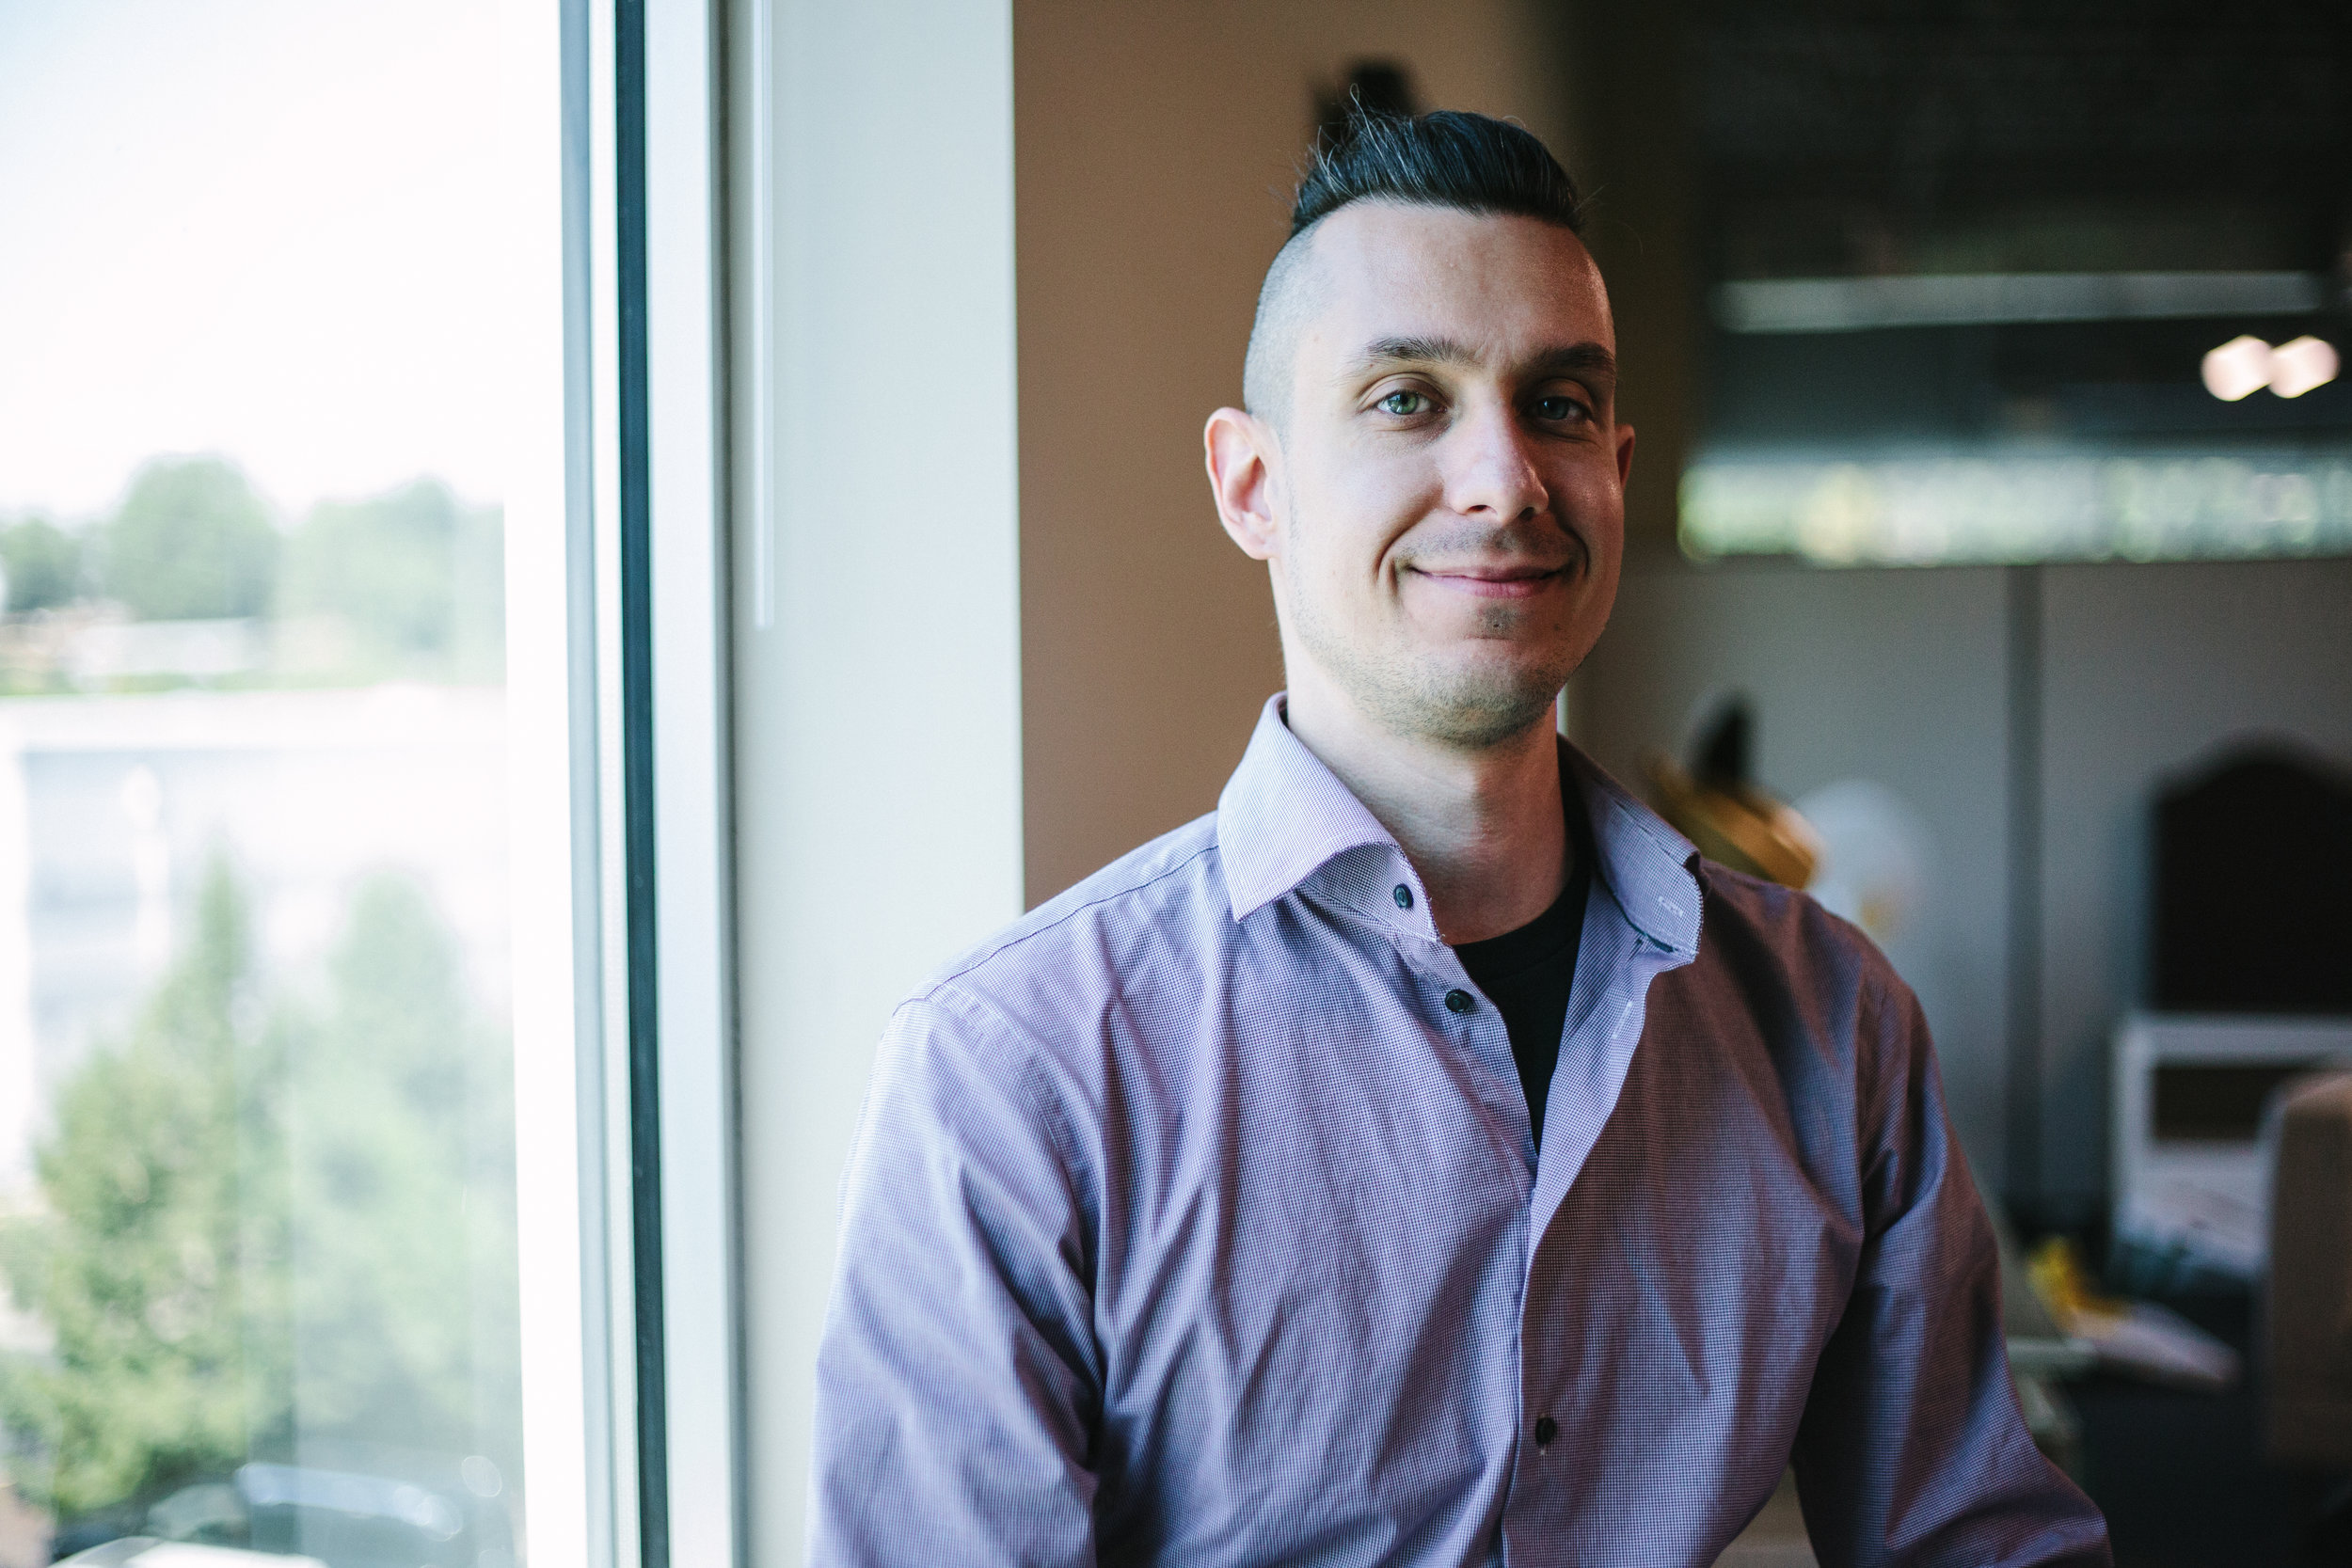 Michael Ingracia | Senior Client Operations Manager   When Mike is not filling sales pipelines for our clients,you can find him talking our ears off about some random band no one has ever heard! Mike loves making music and movies with friends when not at home with his wife and child.